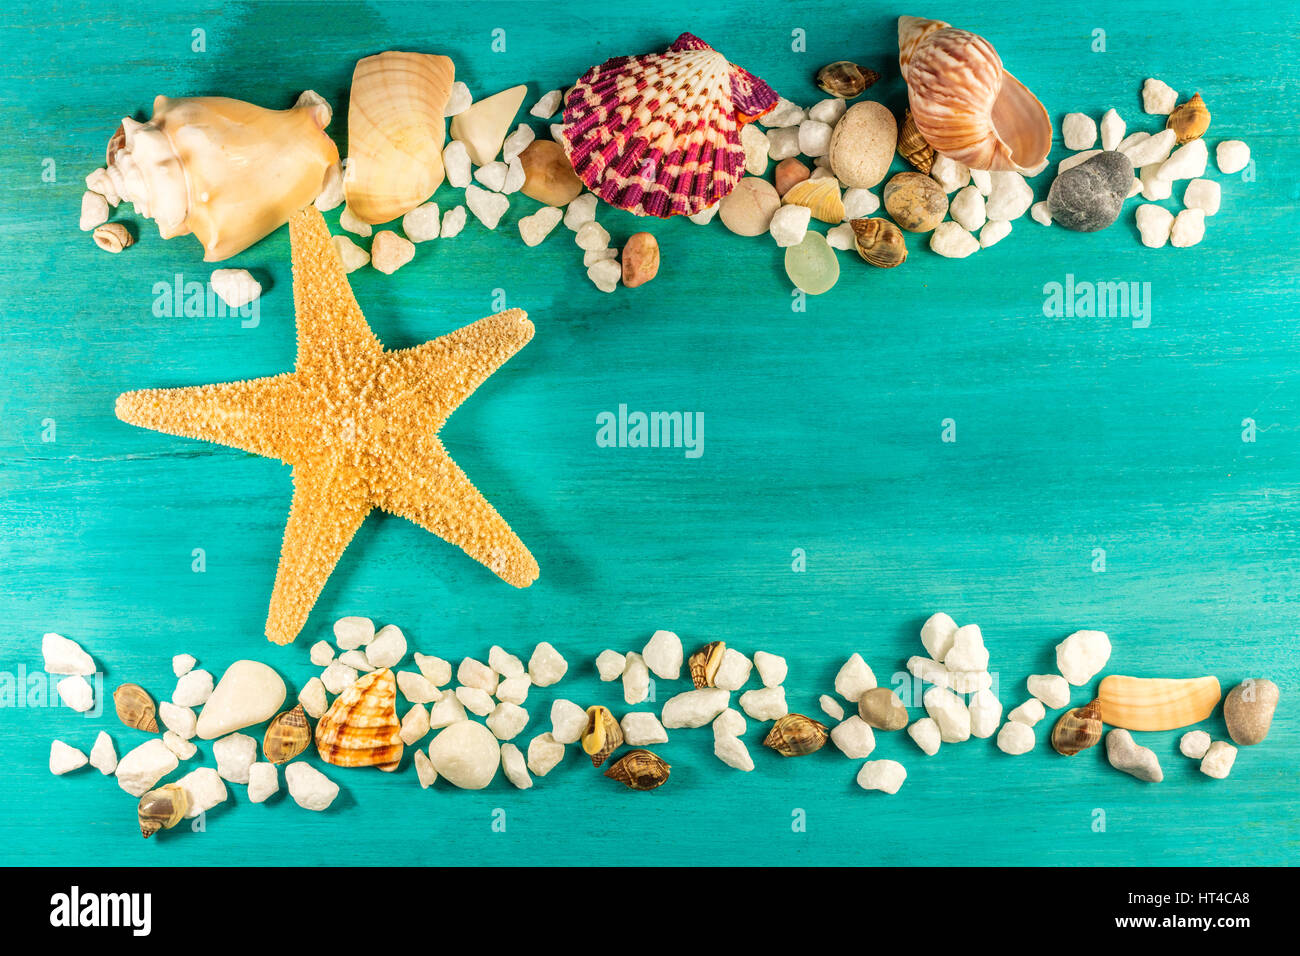 How to Pack Sea Shells for Travel